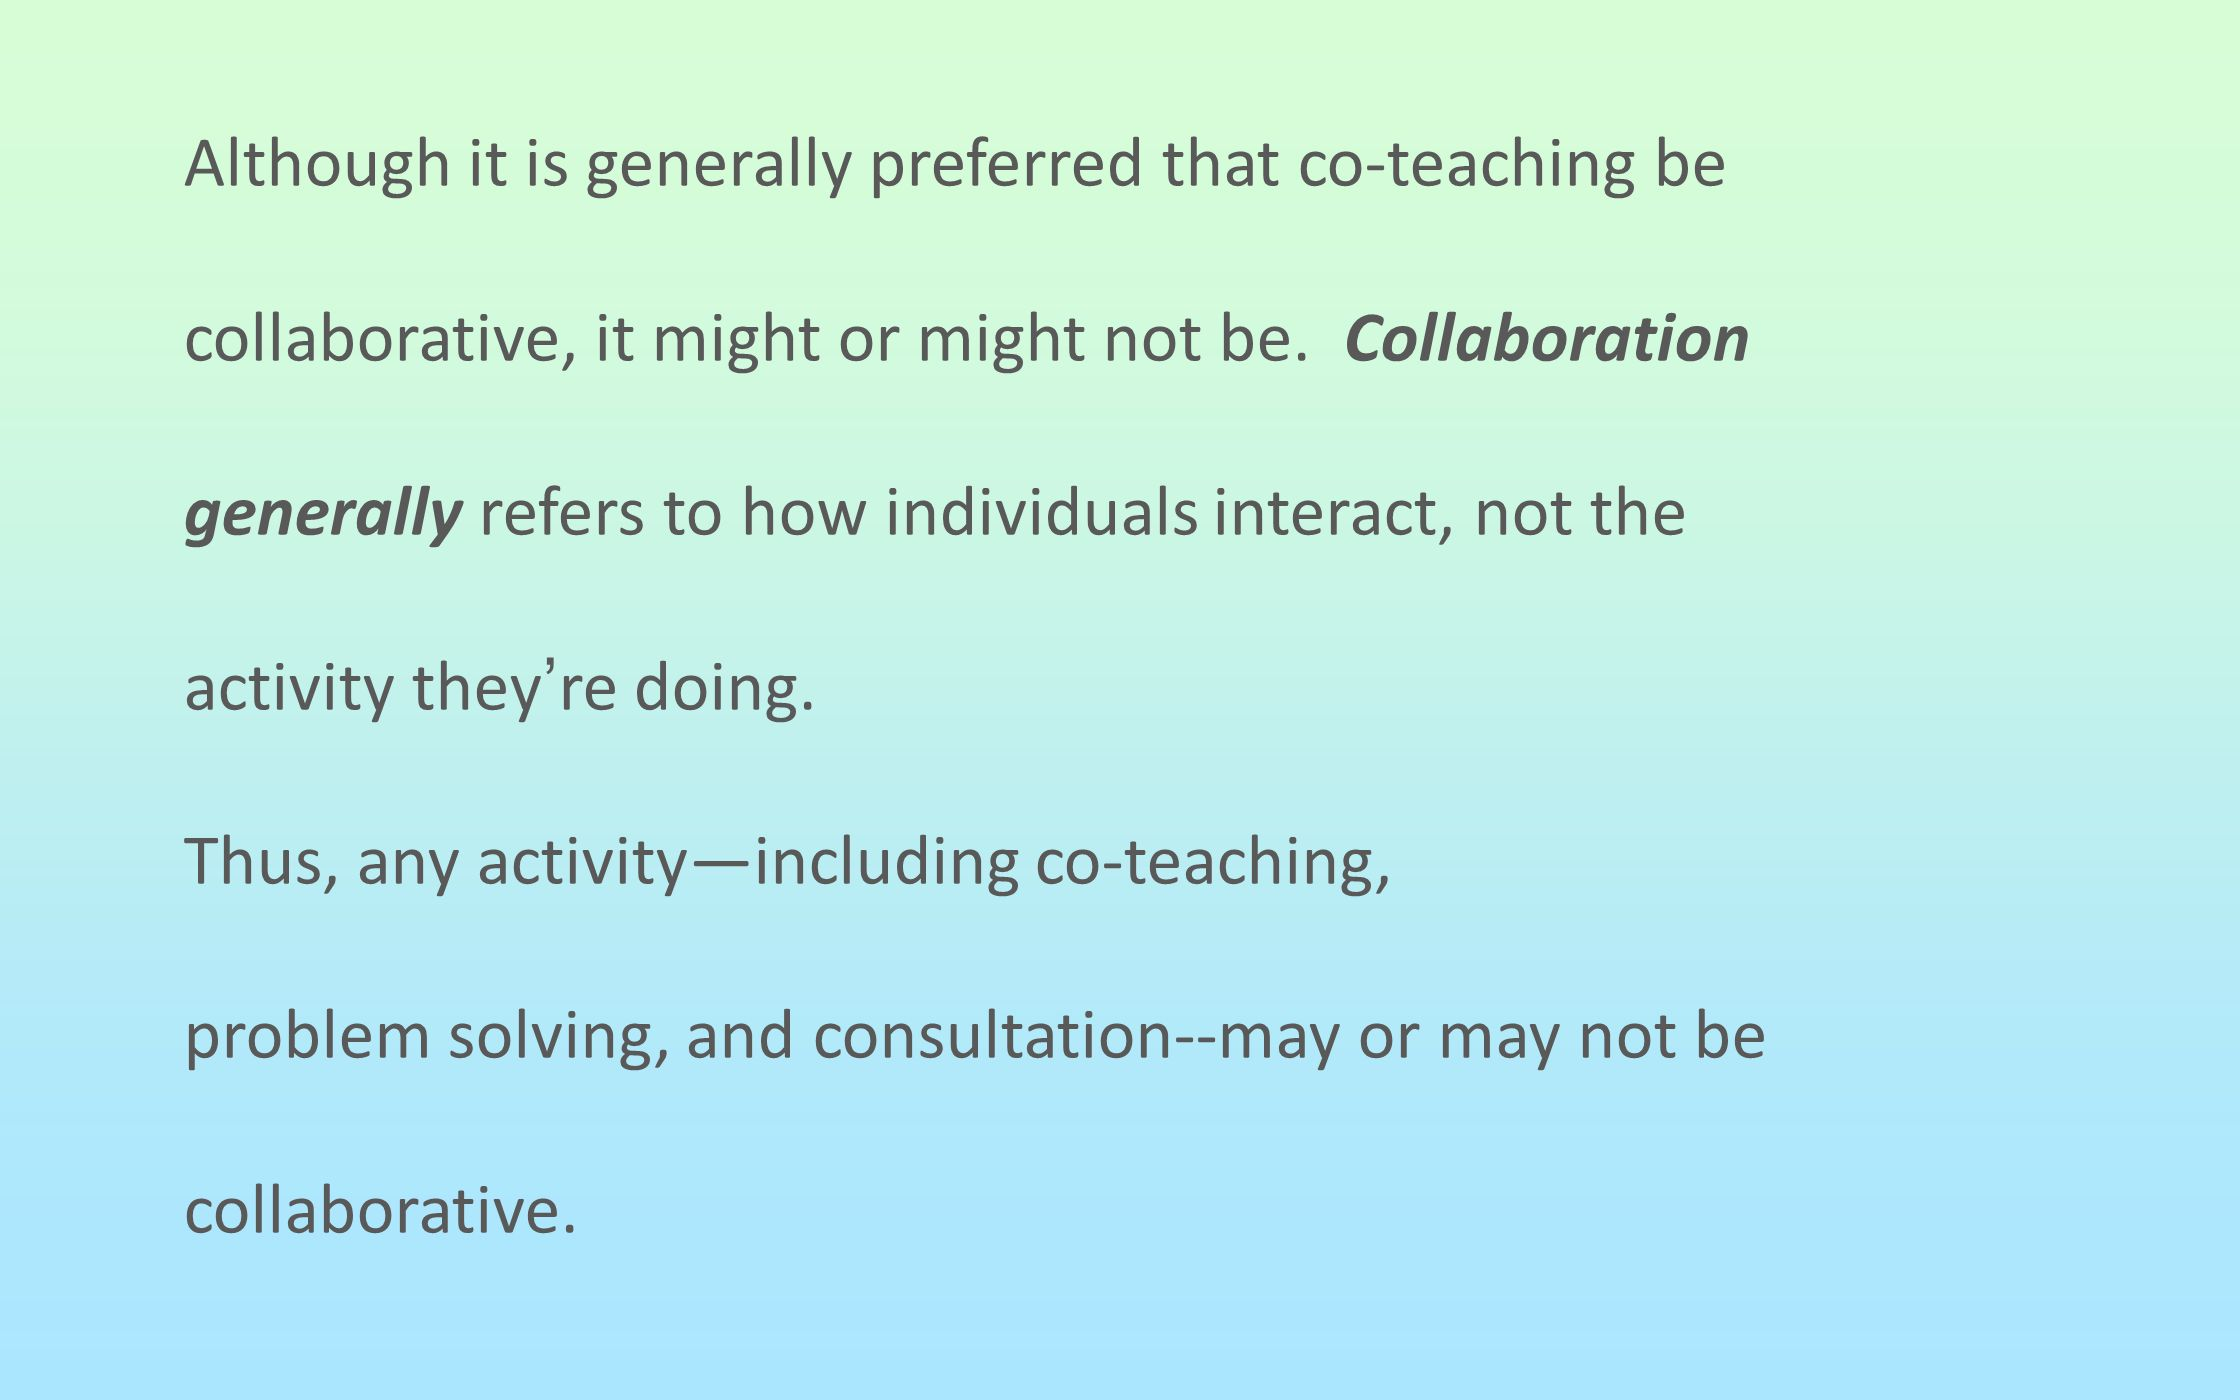 Although it is generally preferred that co-teaching be collaborative, it might or might not be. Collaboration generally refers to how individuals inte